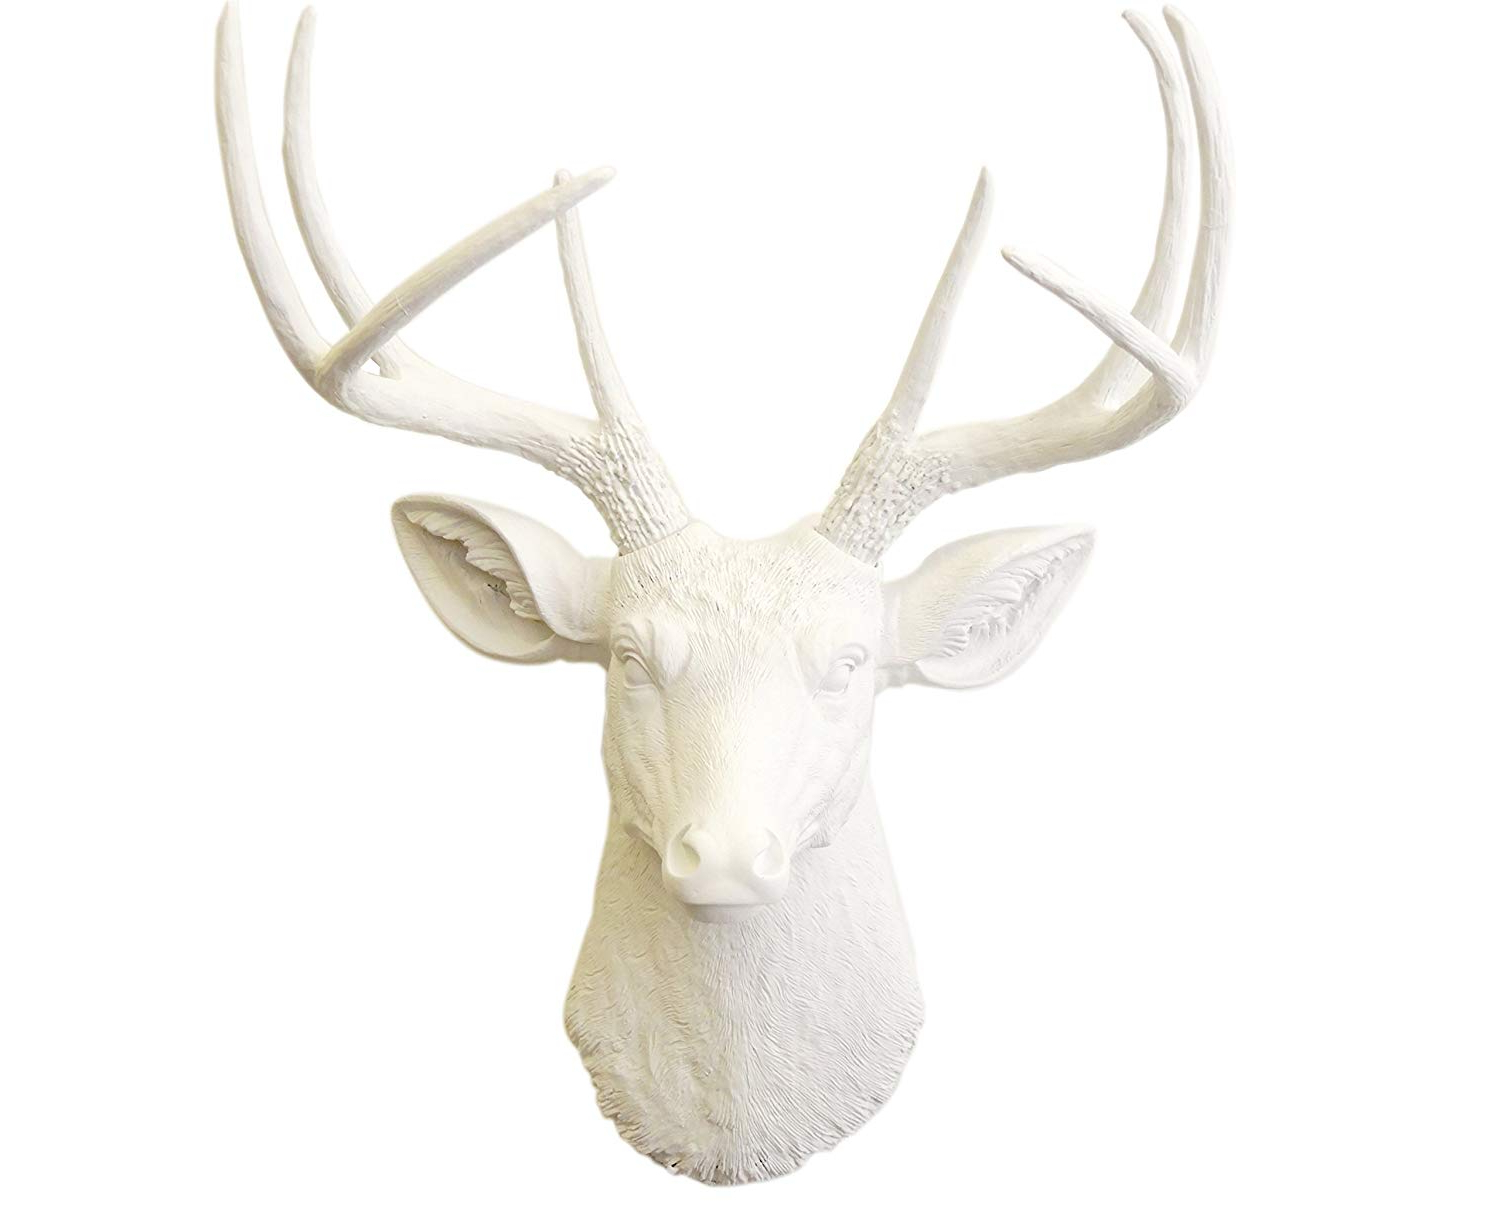 Recent Amazon: Near And Deer D0101 Faux Taxidermy 8 Point Deer Head With Regard To Atlantis Faux Taxidermy Wall Decor (View 9 of 20)